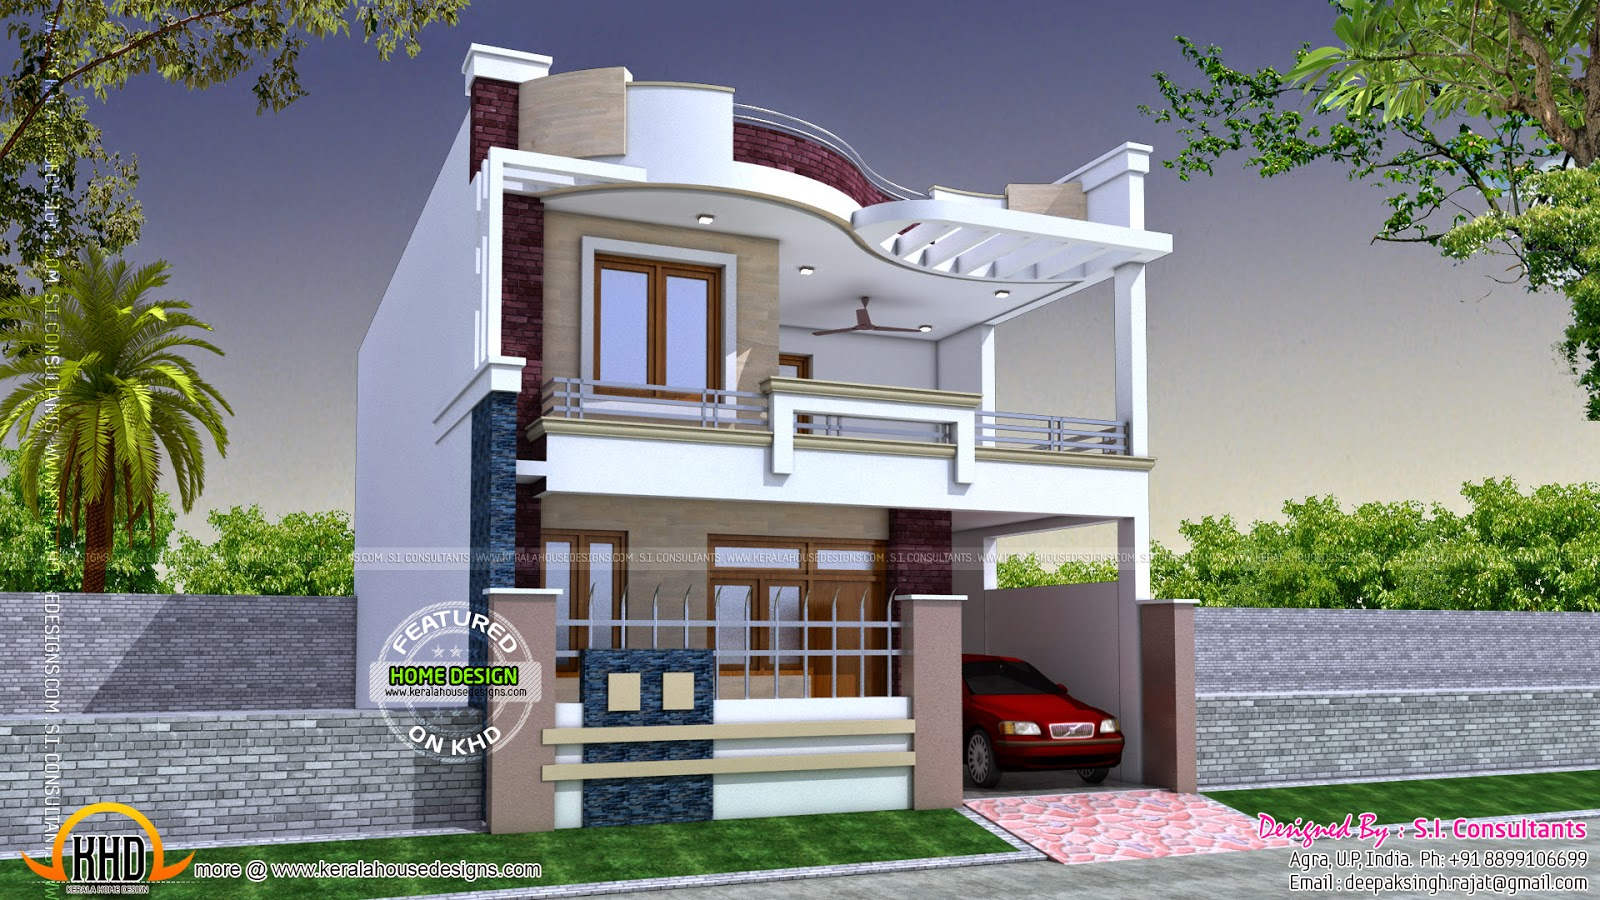 Modern indian home design kerala home design and floor plans for Pictures of house designs and floor plans